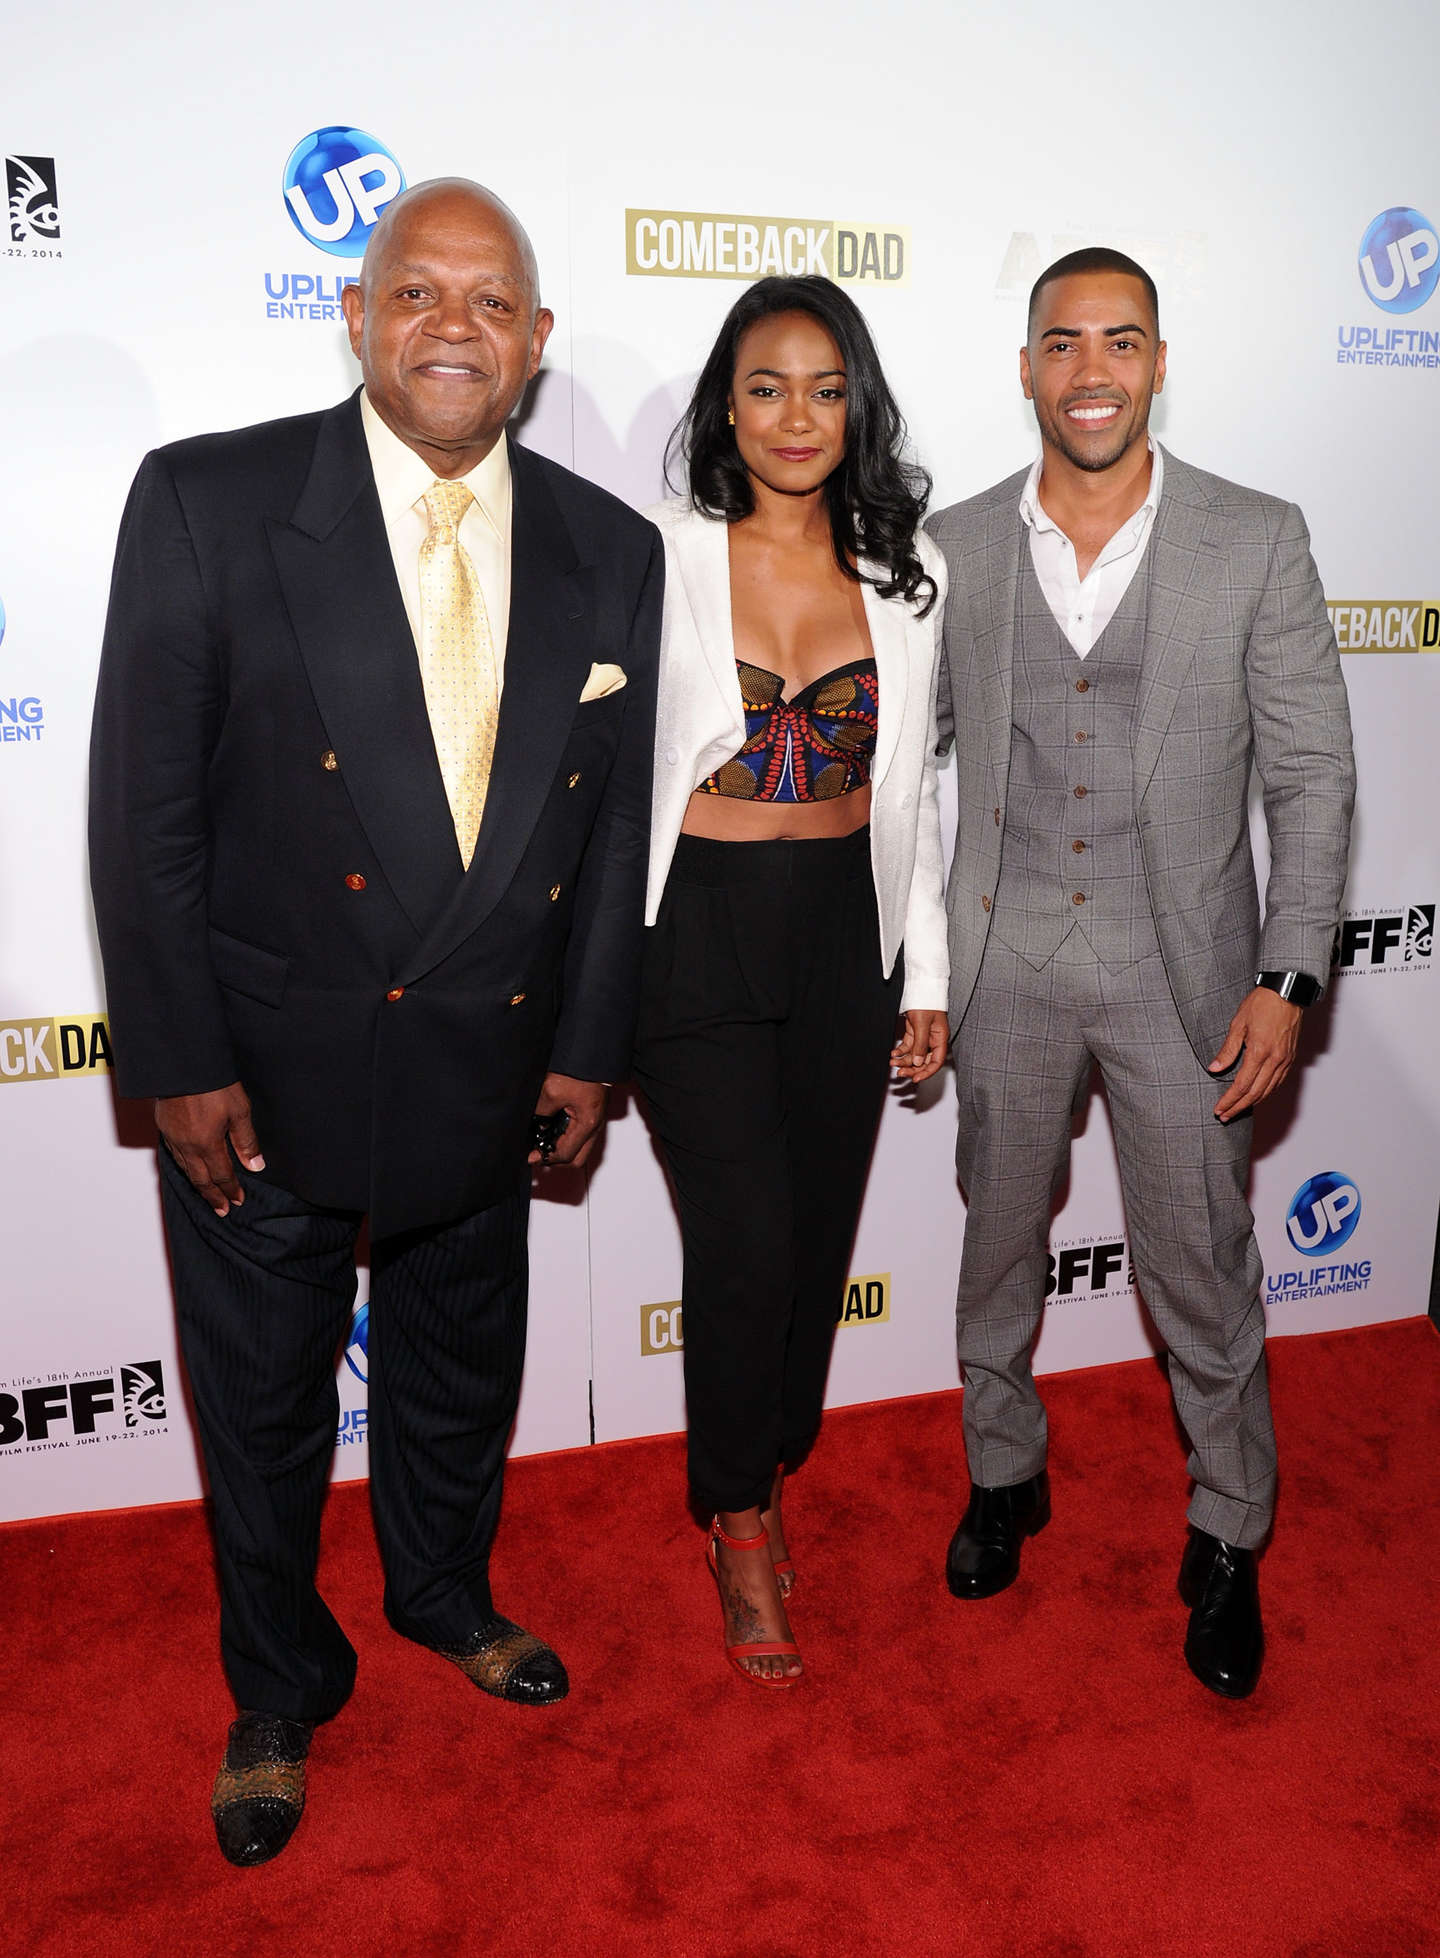 Tatyana Ali ABFF UP TV Premiere of Comeback Dad in New York